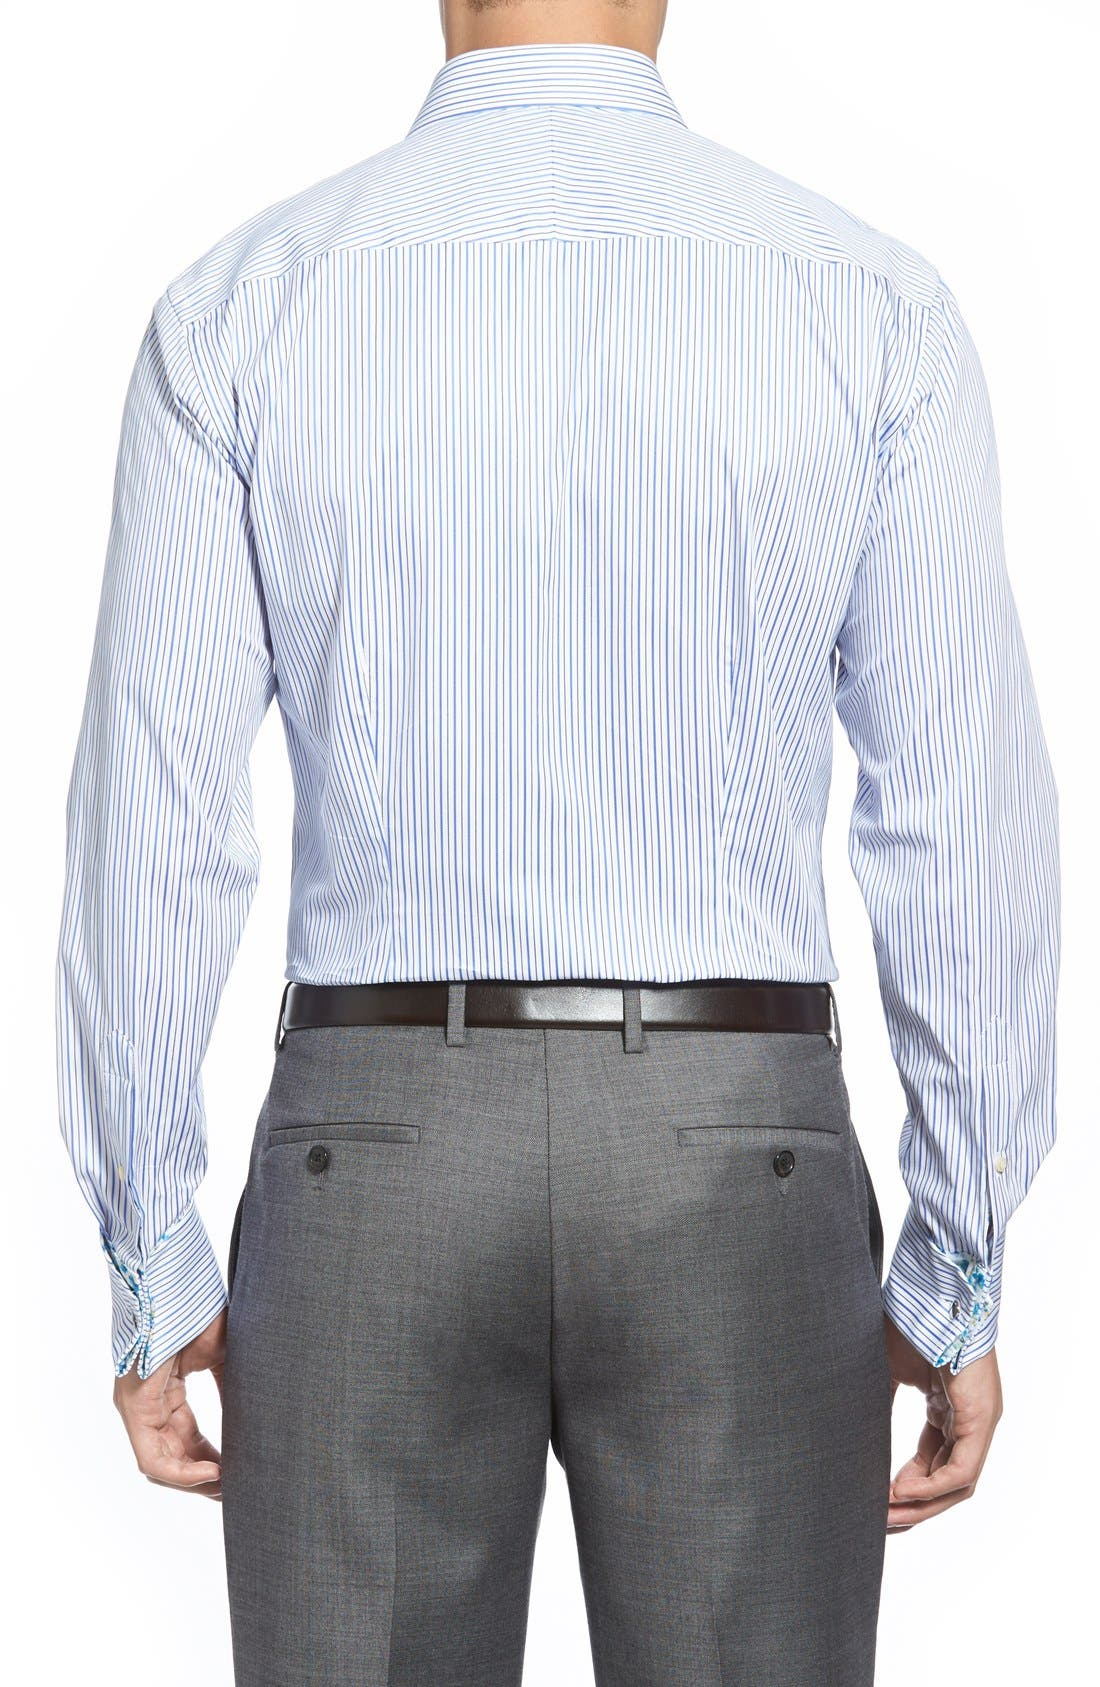 'Takeley' Trim Fit Stripe French Cuff Dress Shirt,                             Alternate thumbnail 3, color,                             421